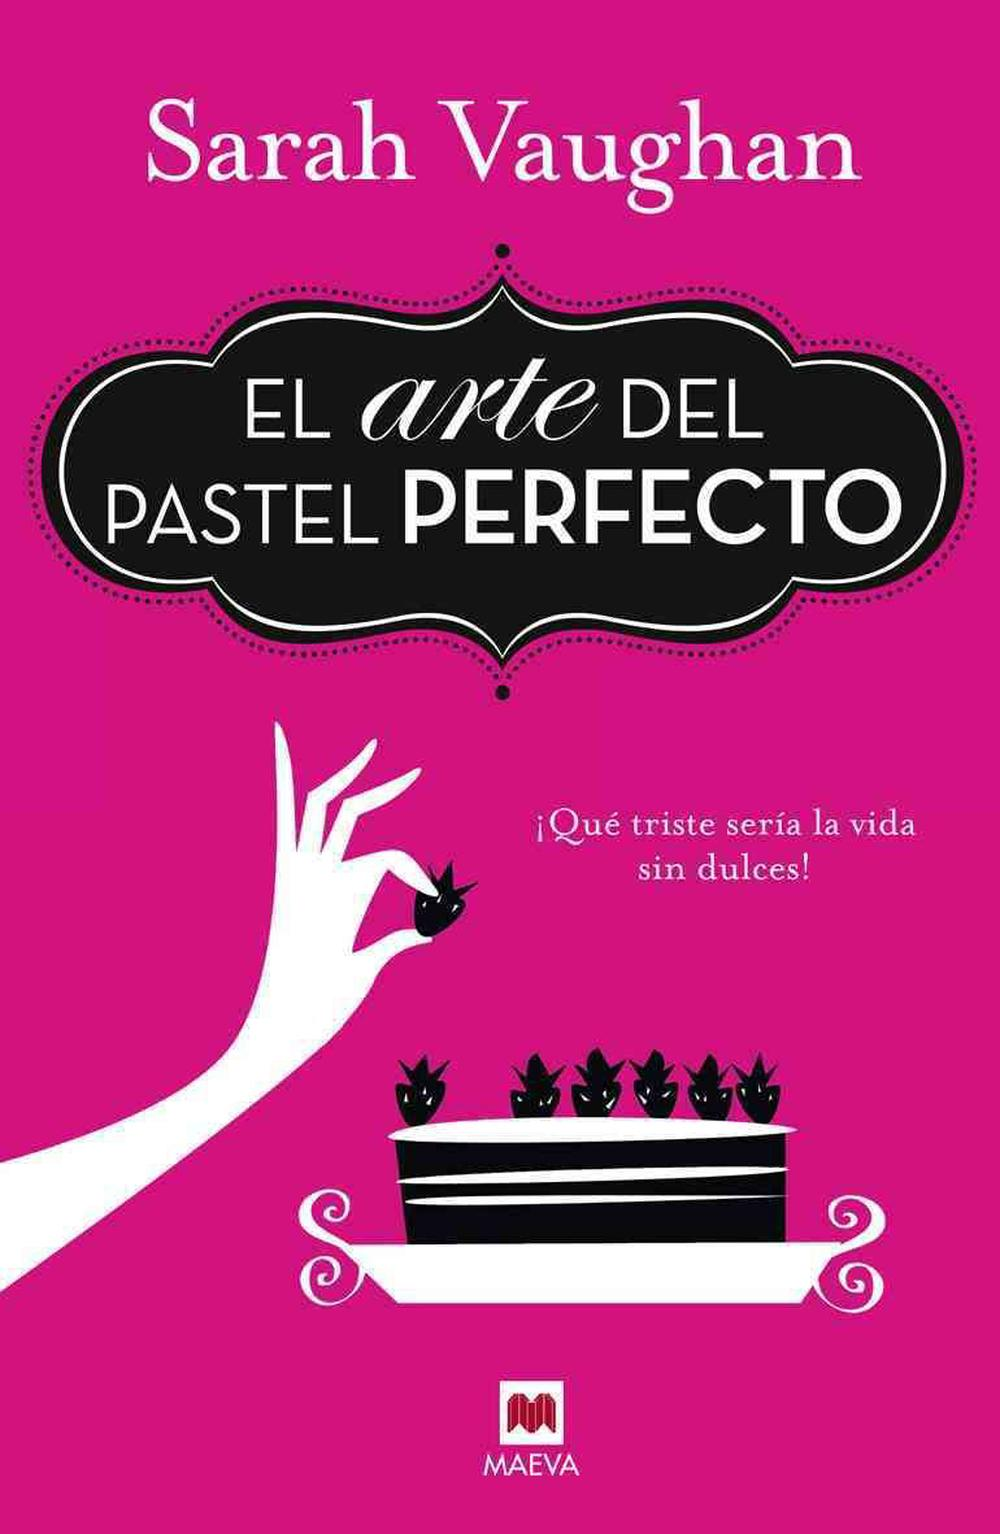 La Arte In Spanish Details About El Arte Del Pastel Perfecto By Sarah Vaughn Spanish Hardcover Book Free Shippi